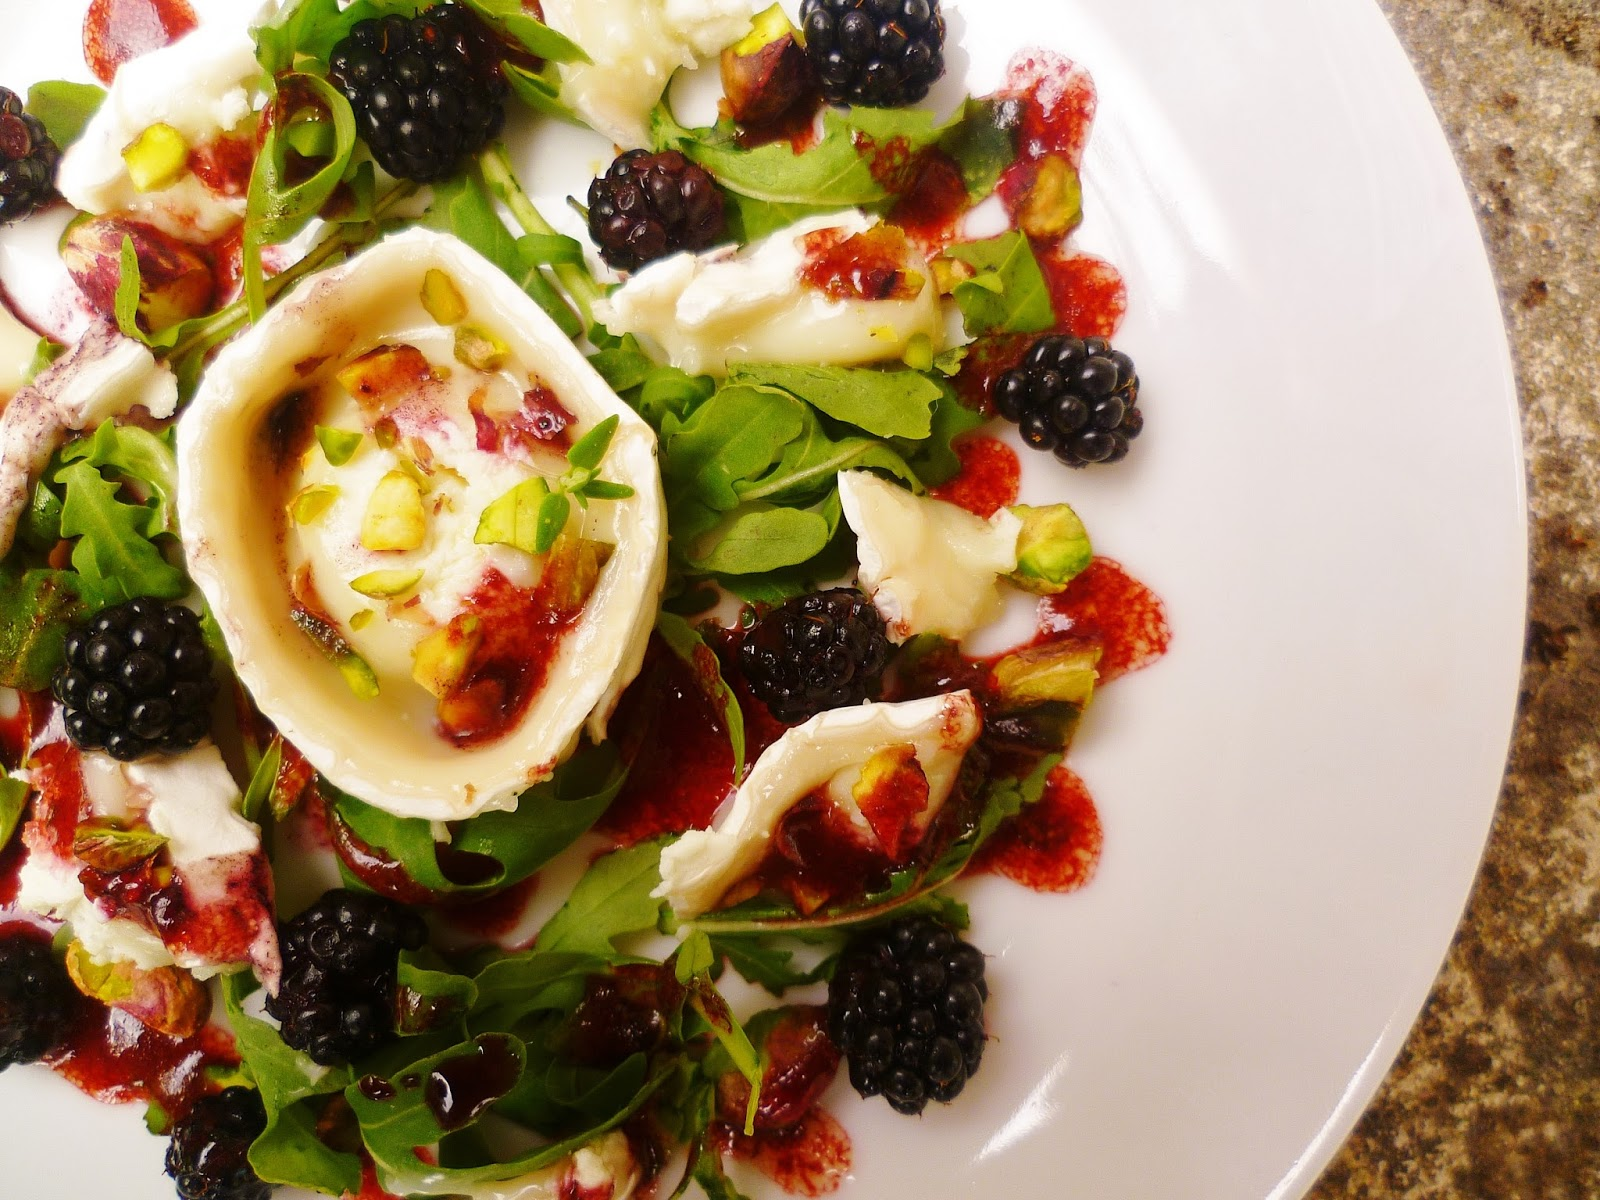 Marmaduke Scarlet: Goat's cheese and blackberry salad with ...